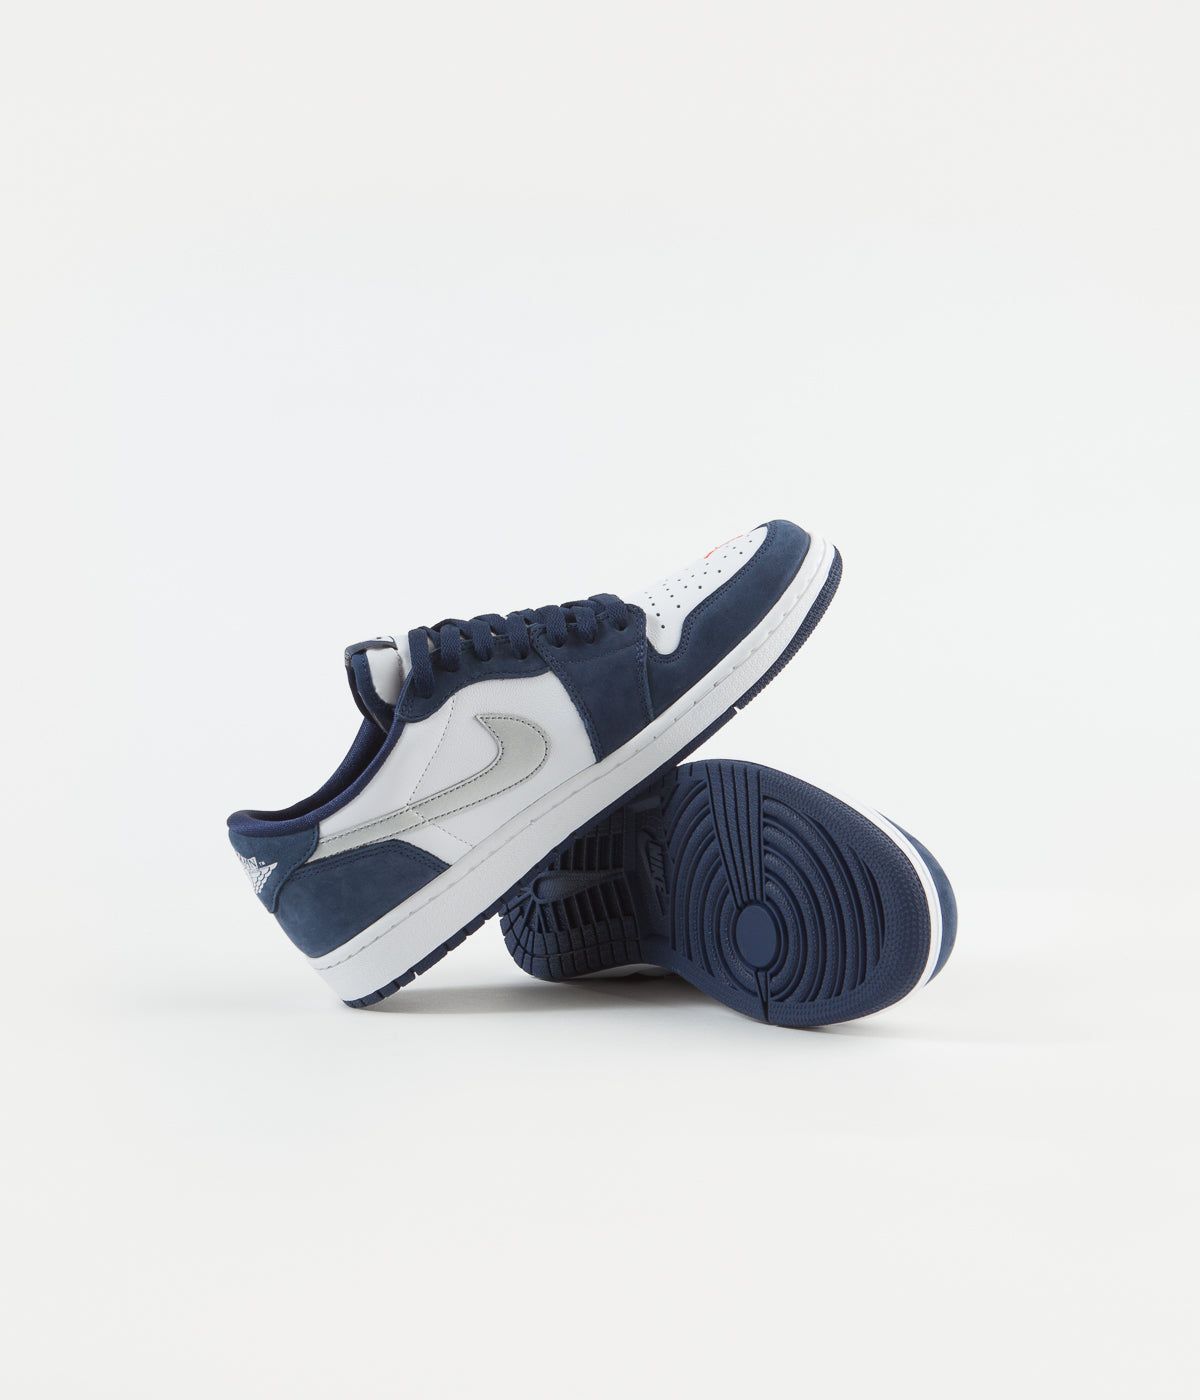 Nike SB Air Jordan 1 Low Shoes - Midnight Navy / Metallic Silver - White